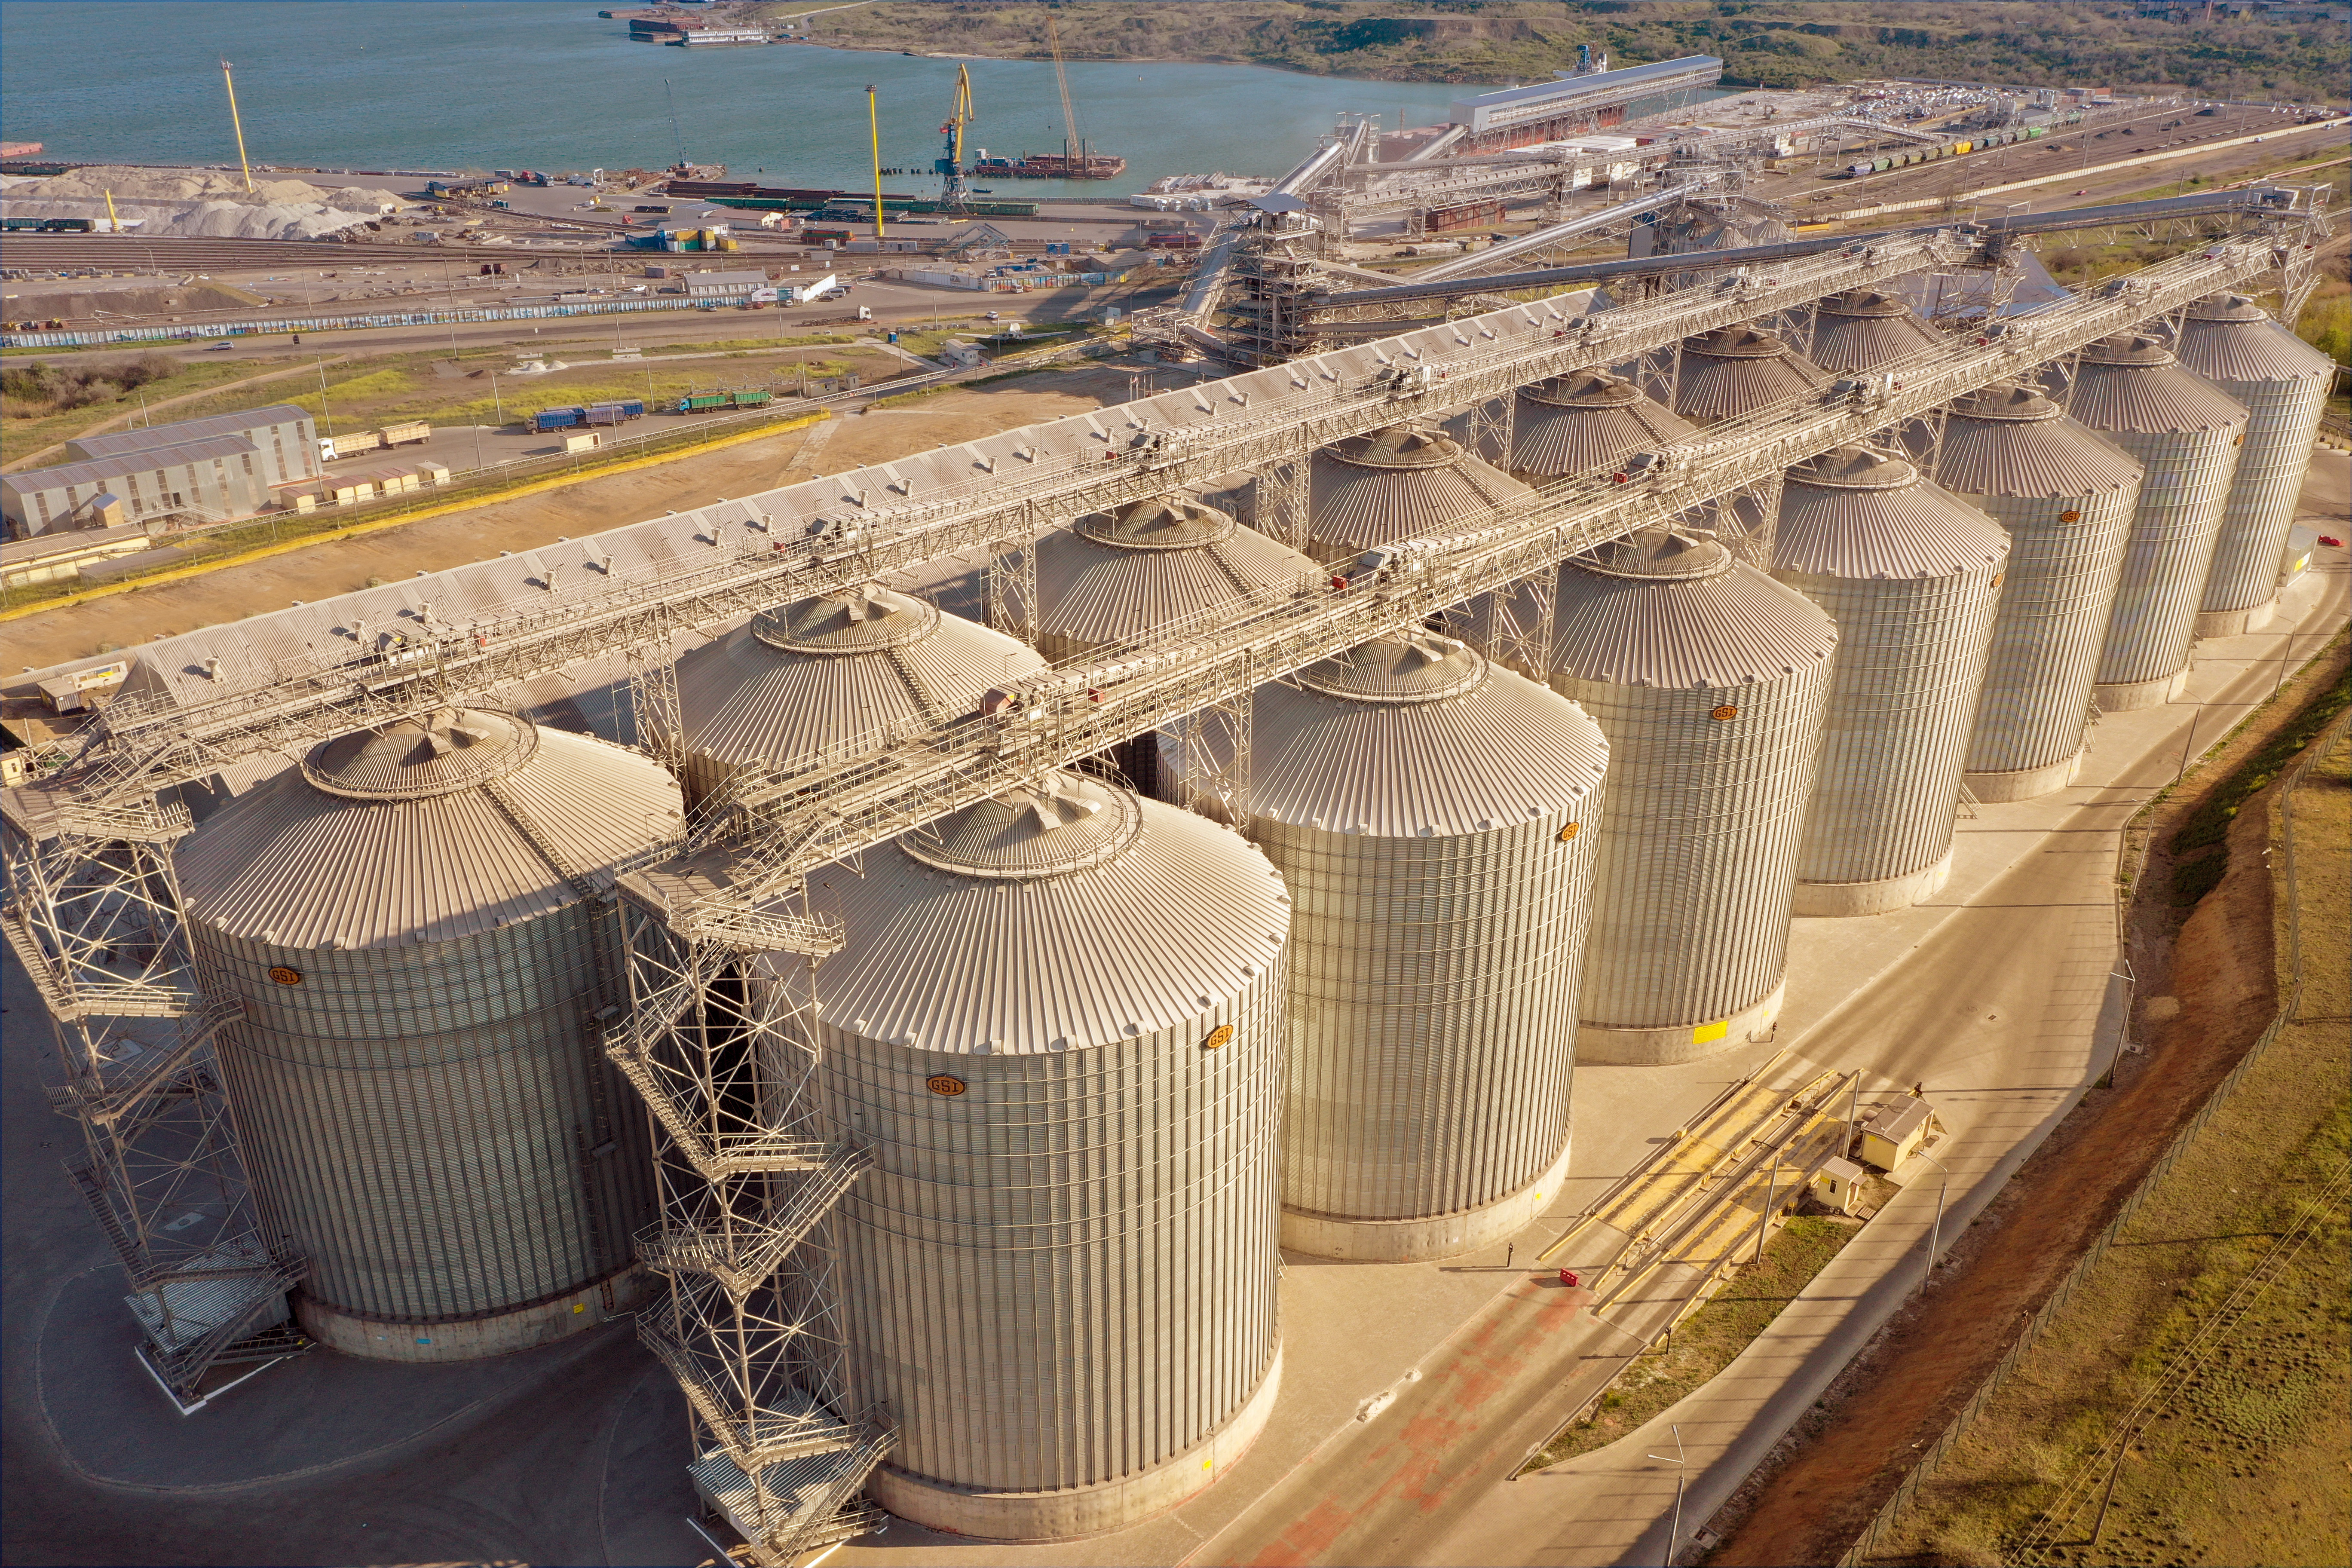 The total capacity of 14 silos is up to 210 thousand tons